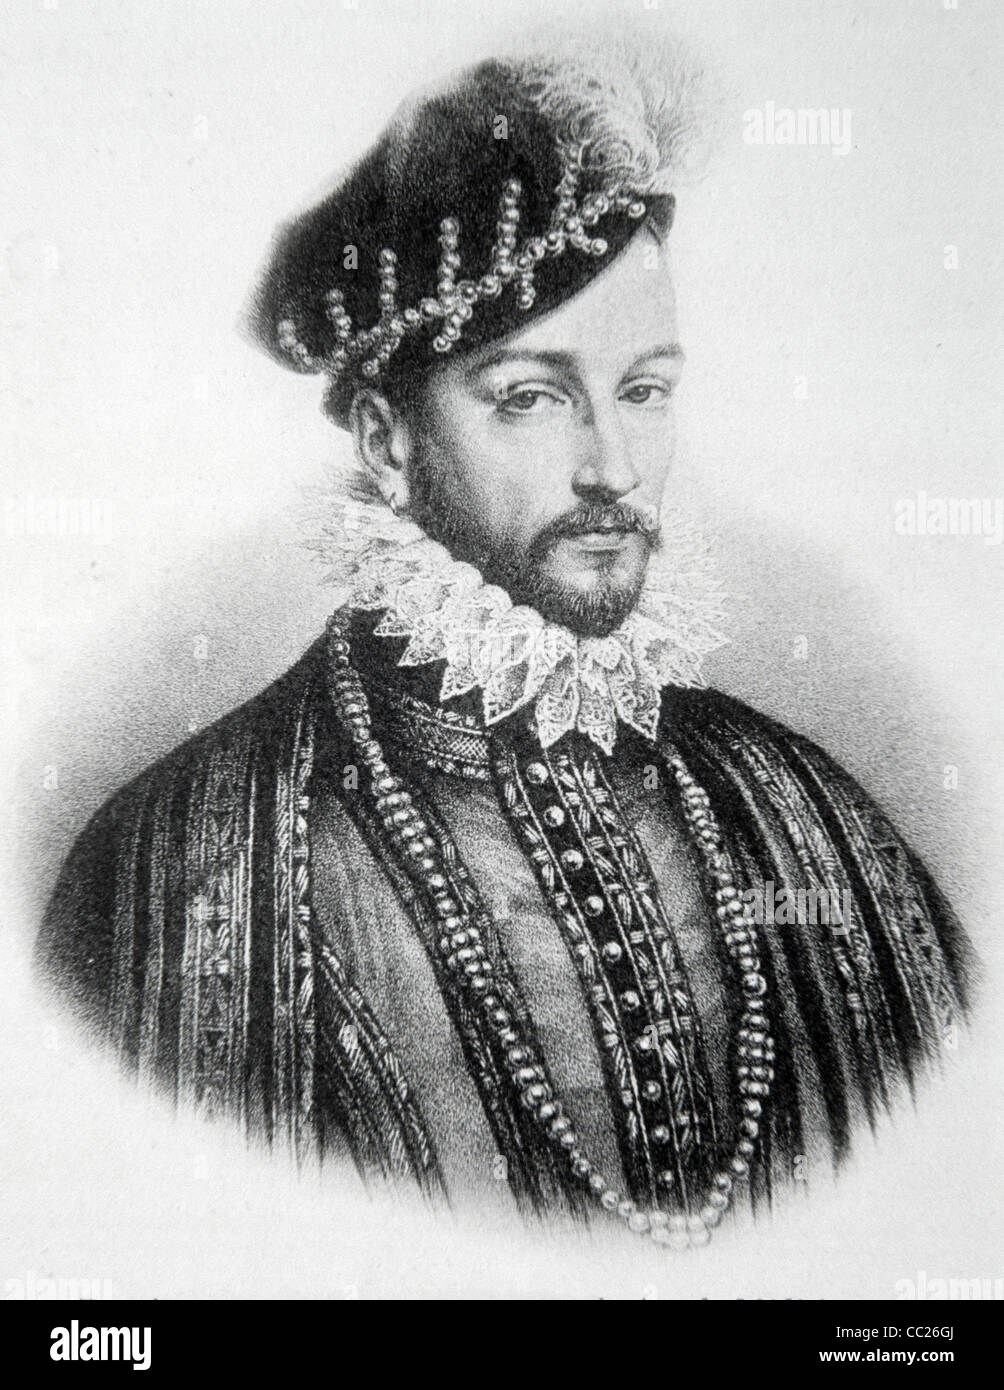 Charles IX, King of France (1560-74). Portrait Stock Photo